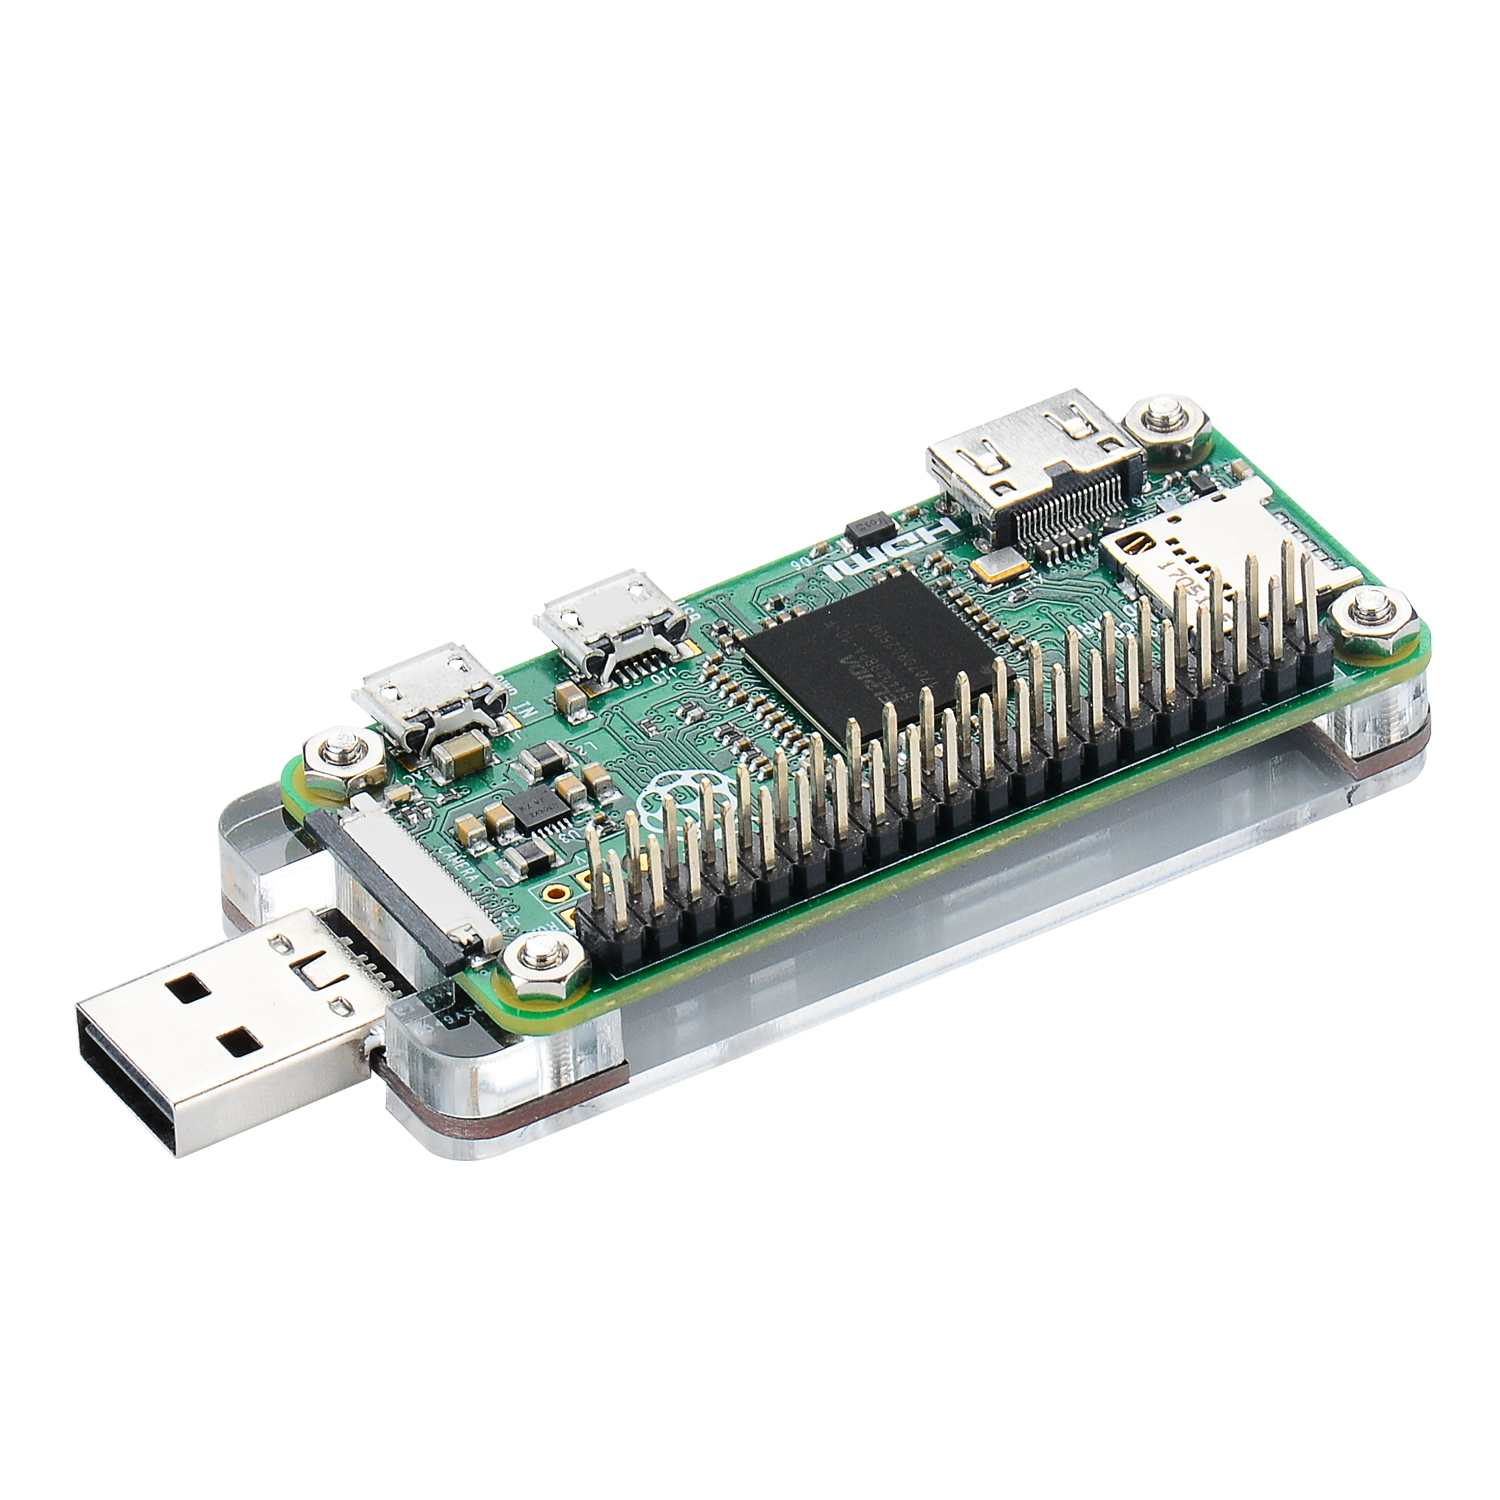 LEORY 1pc USB Dongle With Acrylic Shield Circuit For Raspberry Pi For Zero